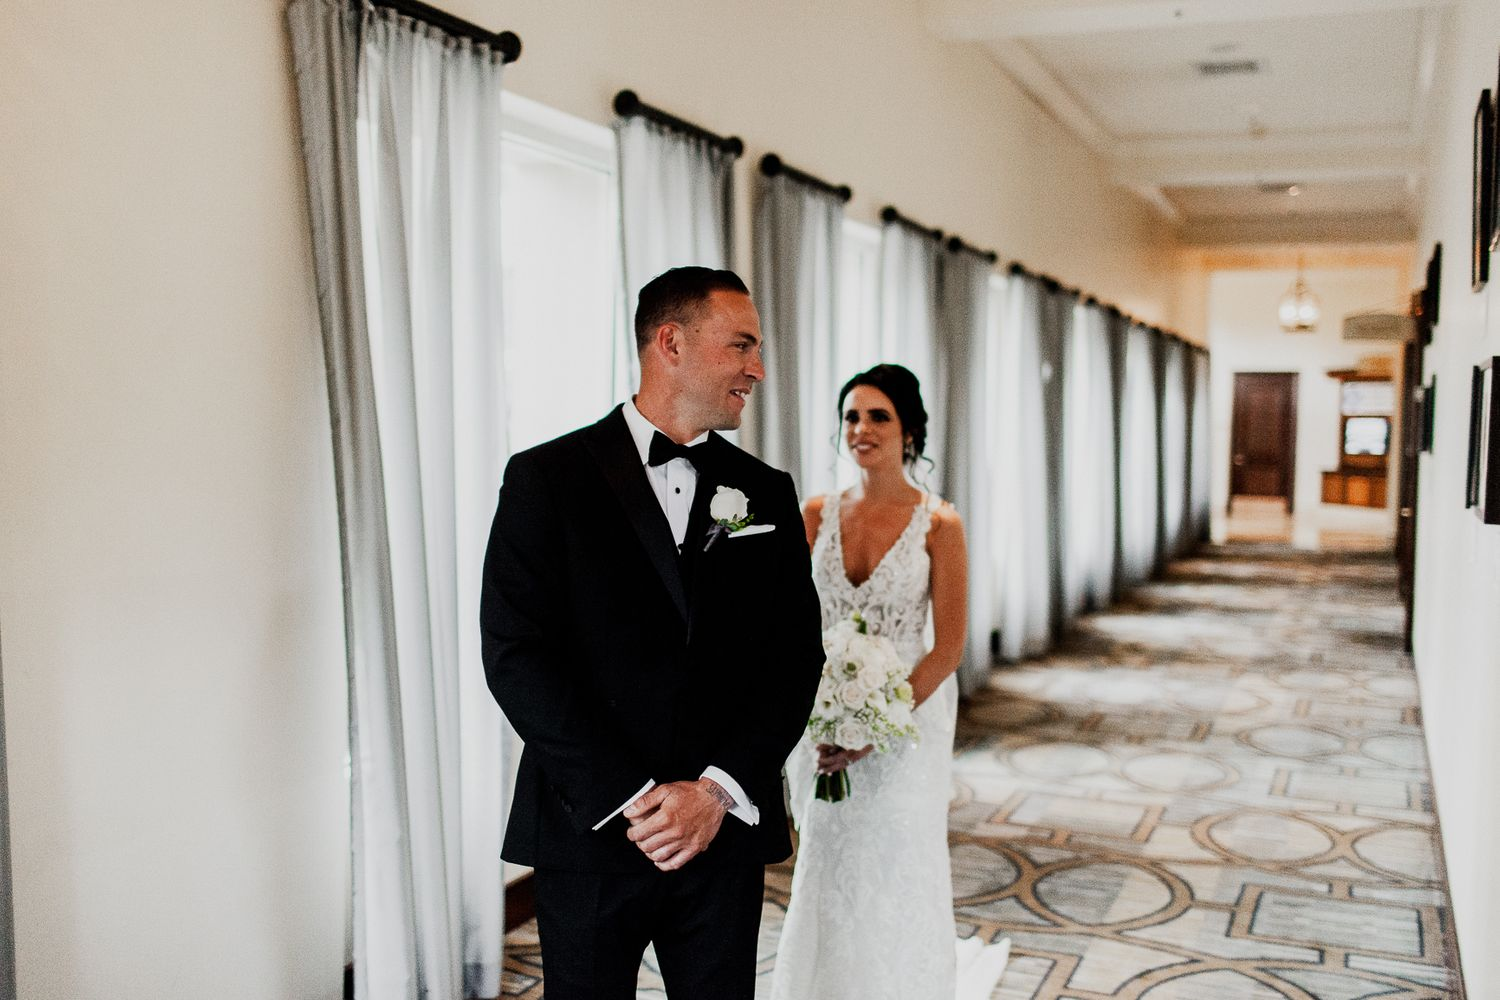 groom turning around to see bride for first time in wedding dress